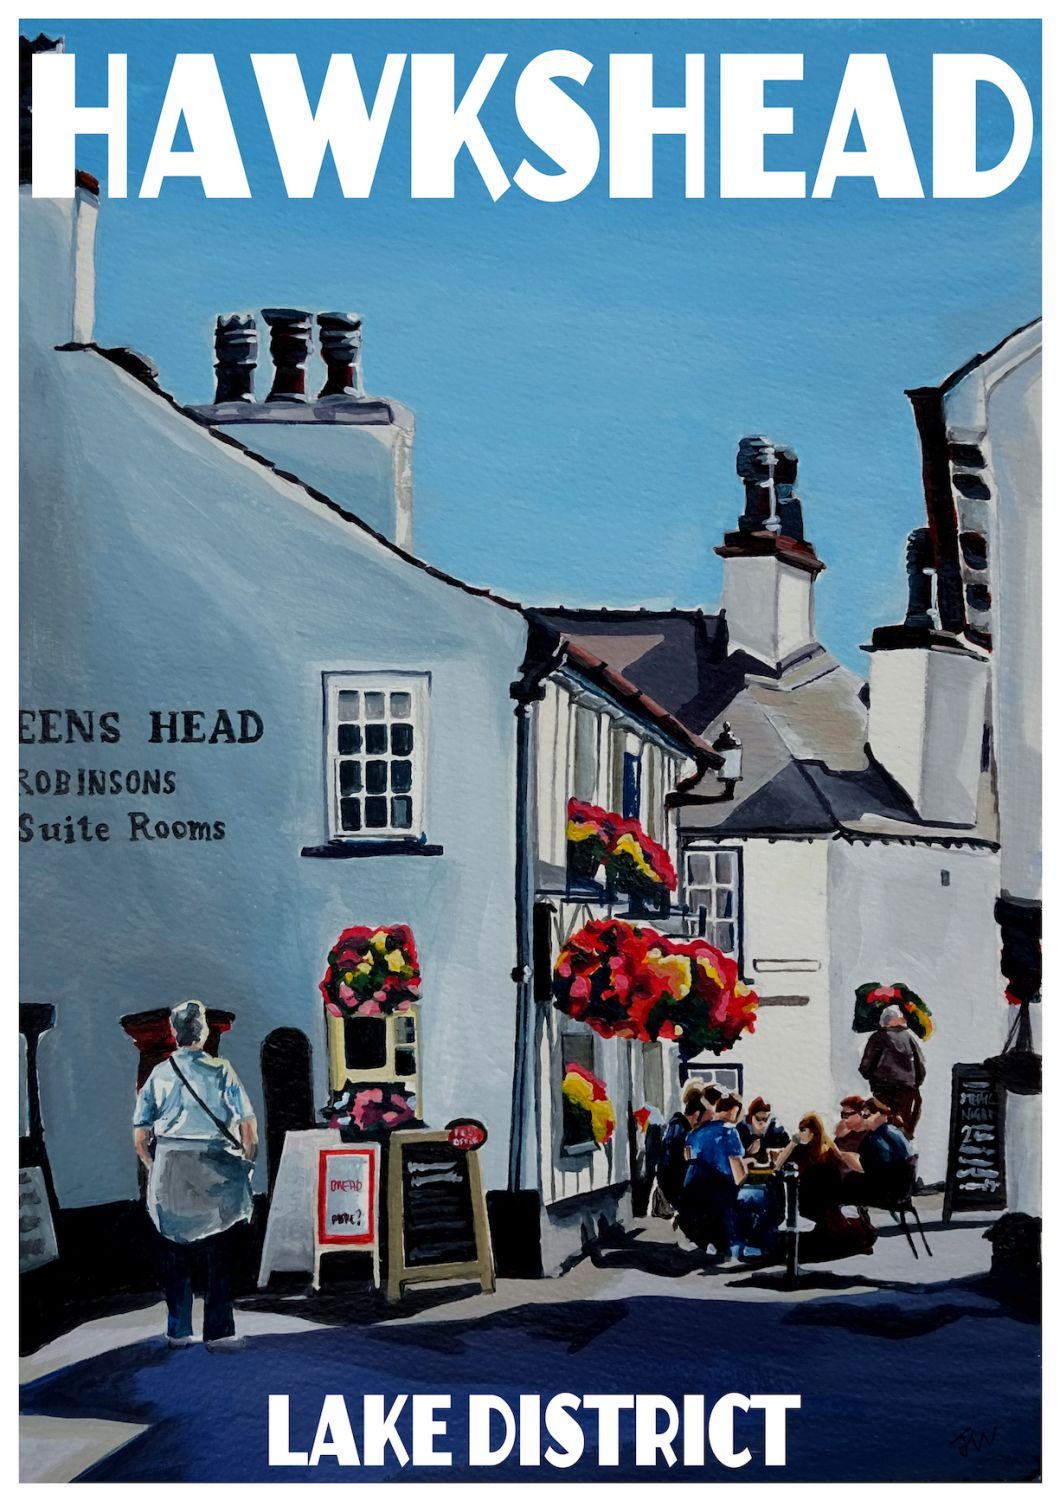 Hawkshead, Lake District. A3 Poster painted by Artist Jo Witherington, Artist in Cumbria.